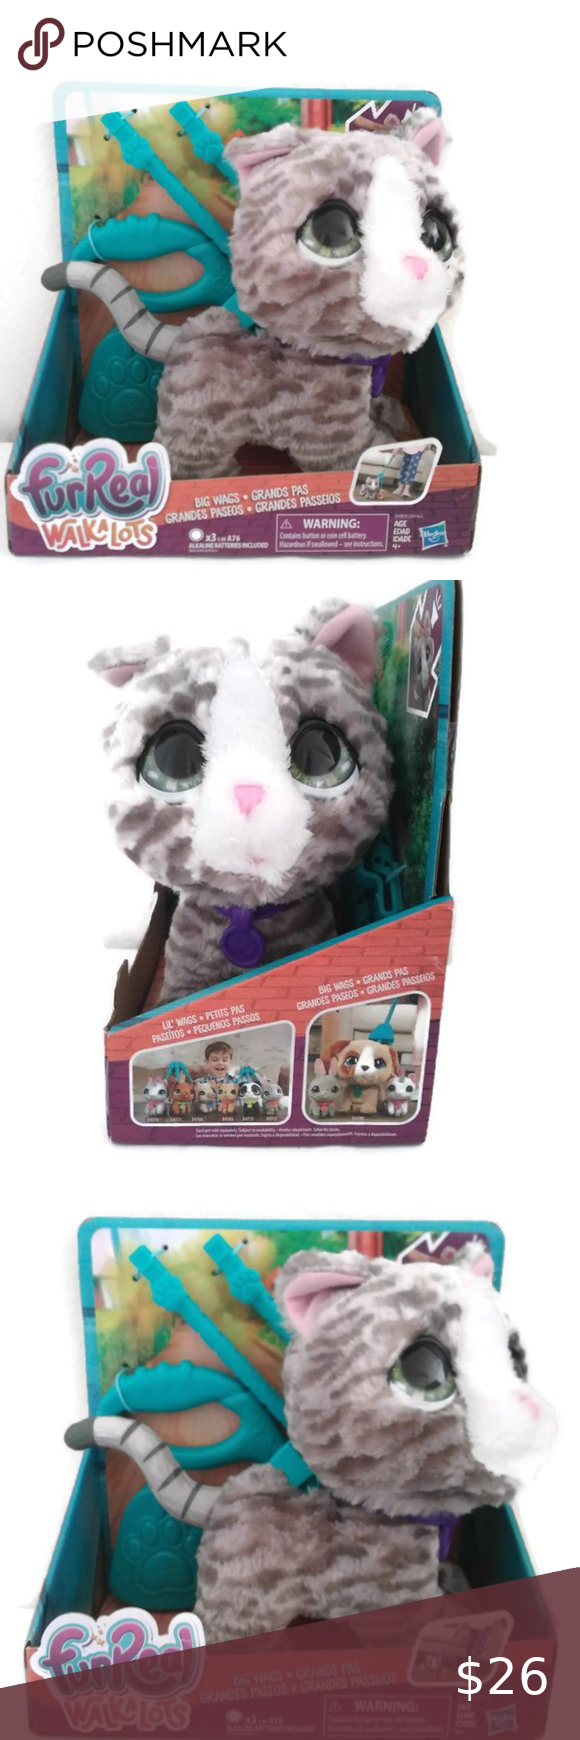 Furreal Big Wags Kitty Walkalots Furreal Walkalots Big Wags Kitty This Toy Is Just Perfect For Kids Ages 4 And Up Furreal Pet In 2020 Kitty Doll Accessories Pet Toys